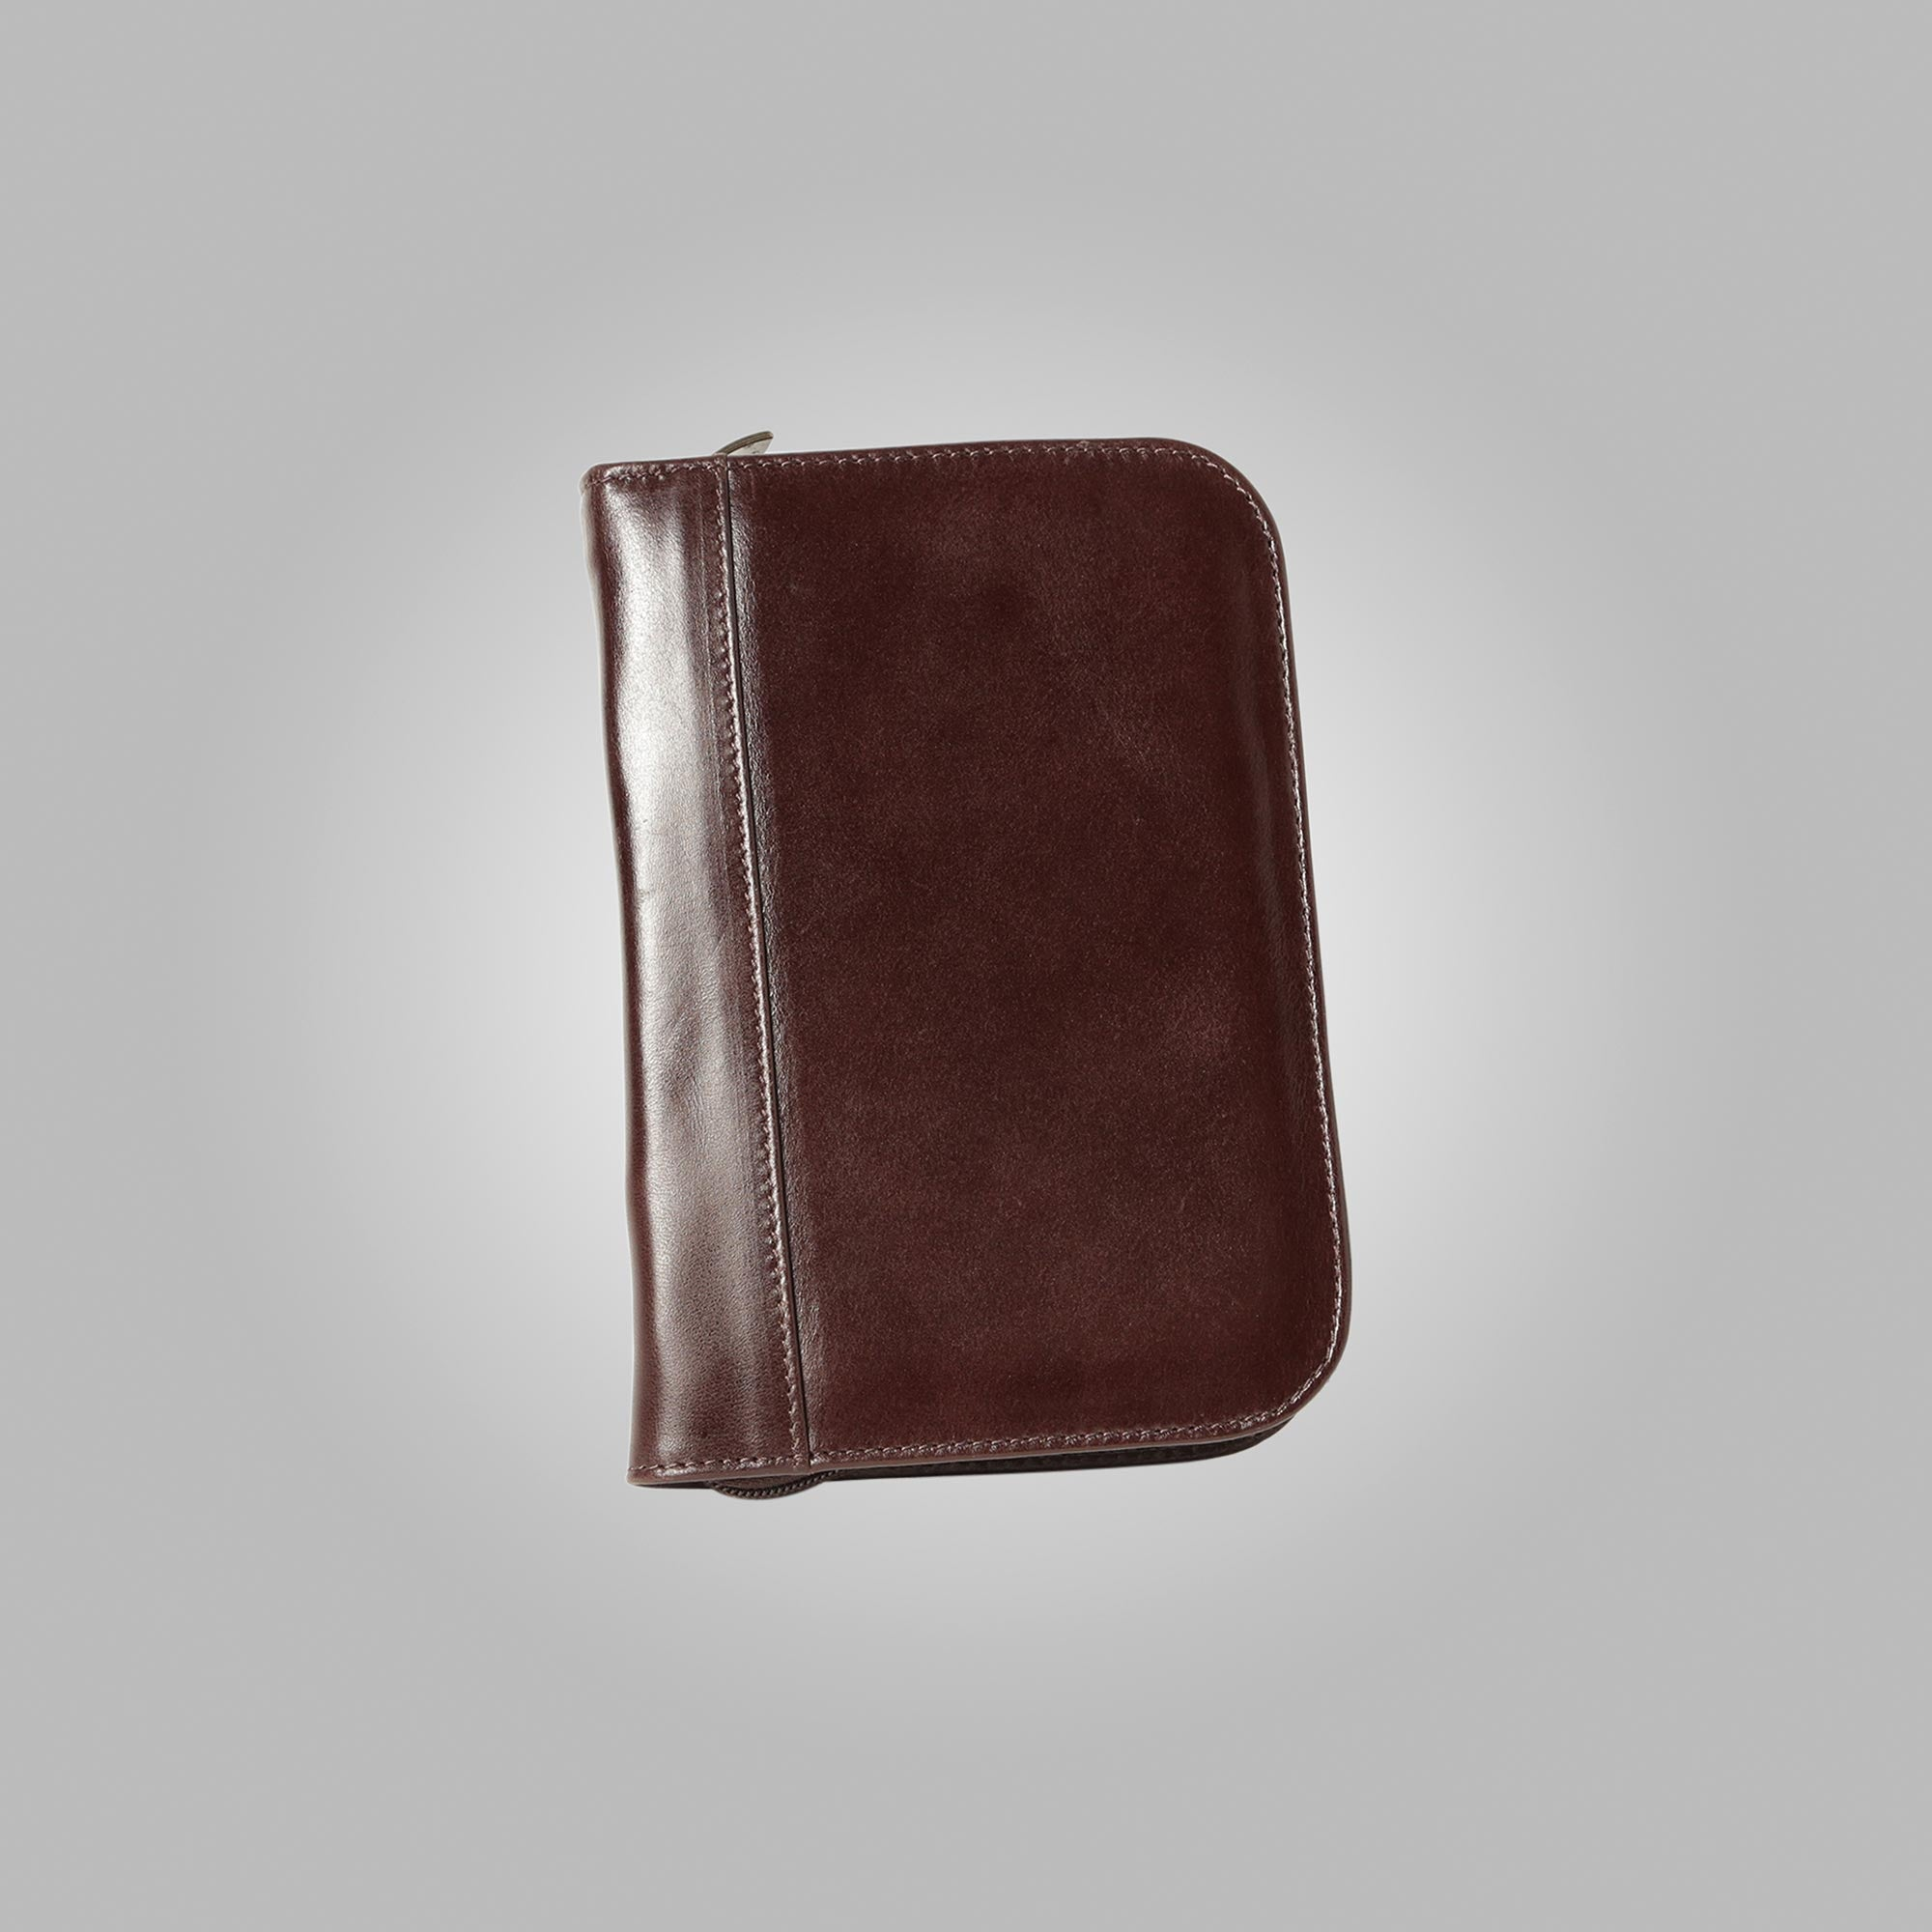 Aston Leather 10 Pen Case